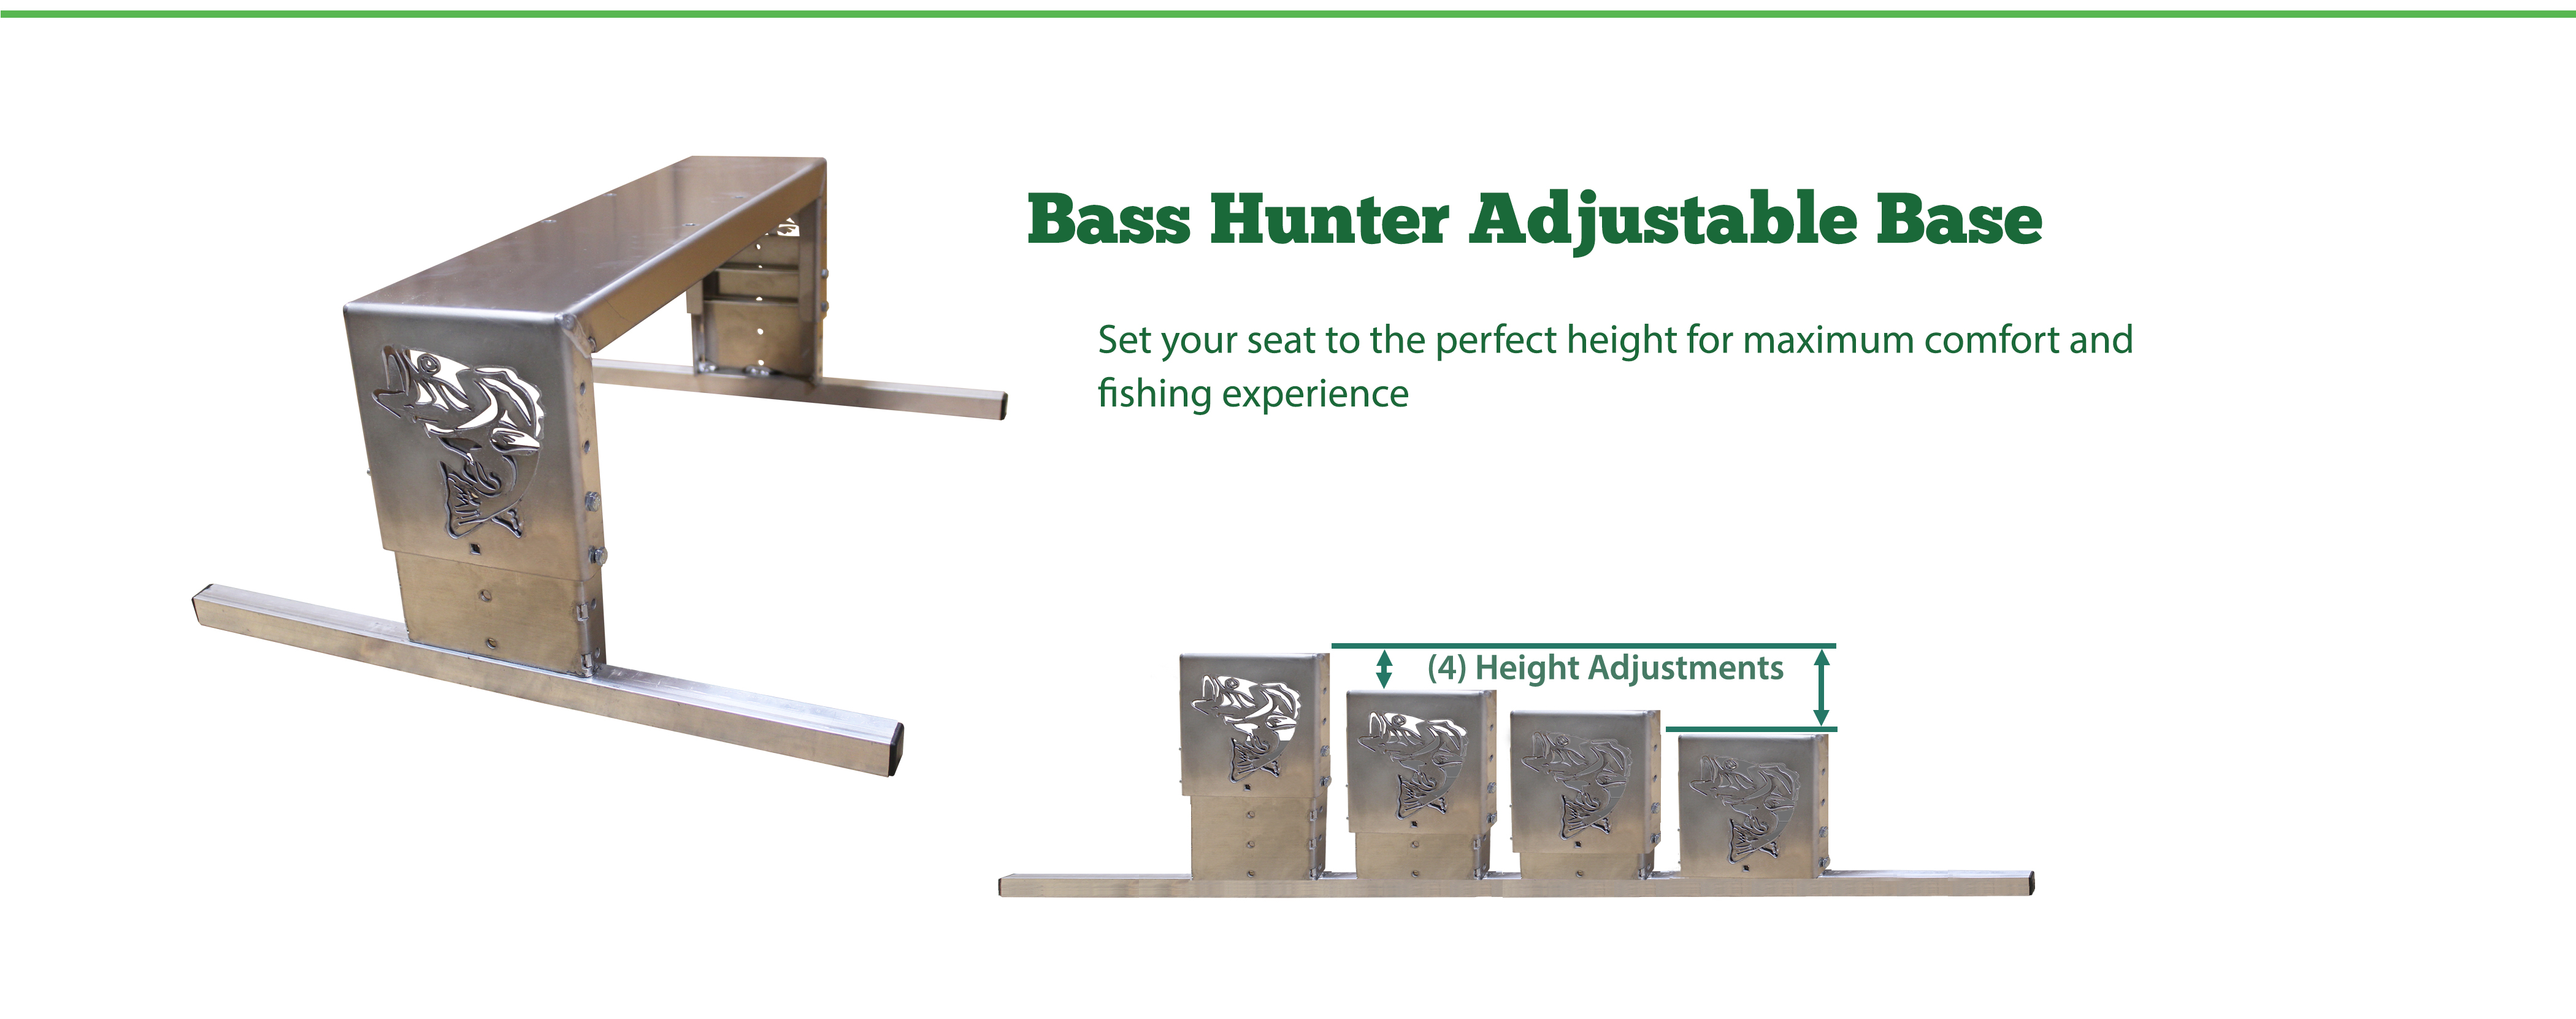 Bass Hunter Adjustable Base